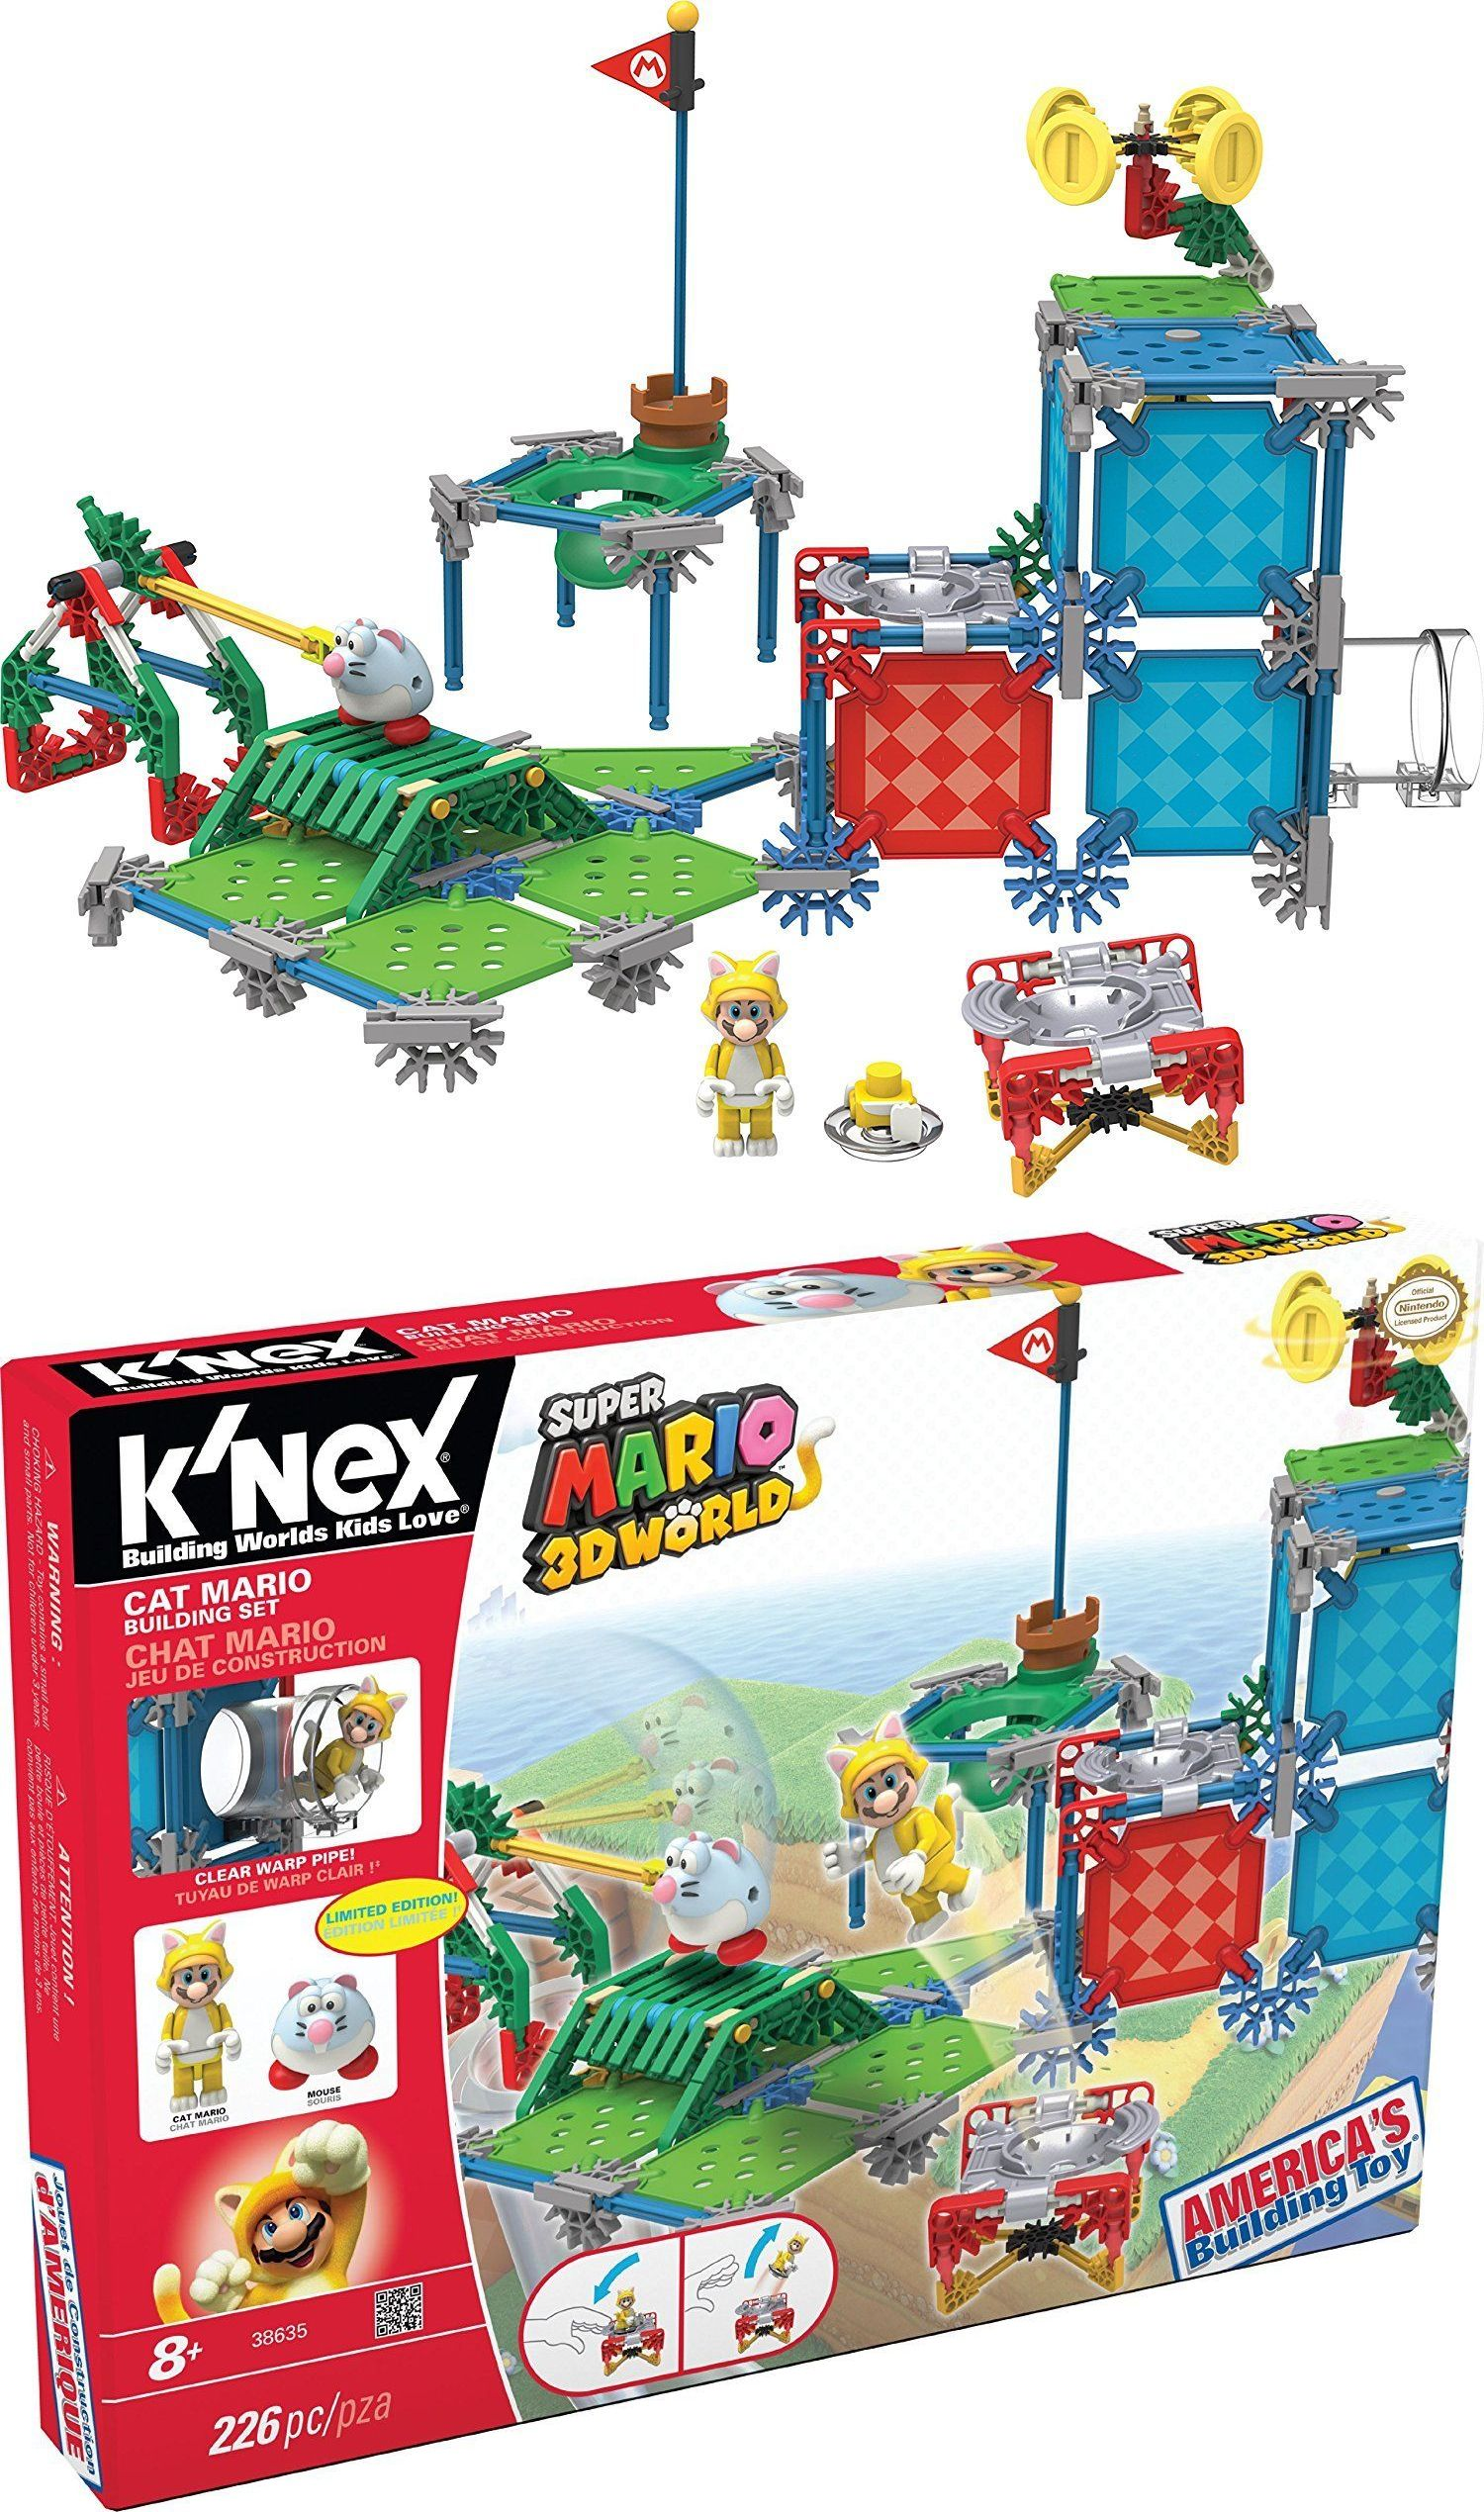 494ab08de65 KNEX Building Toys 21254: K Nex Super Mario Cat Mario Building Set 38635  Mario Chat New Free Shipping -> BUY IT NOW ONLY: $44.99 on eBay!